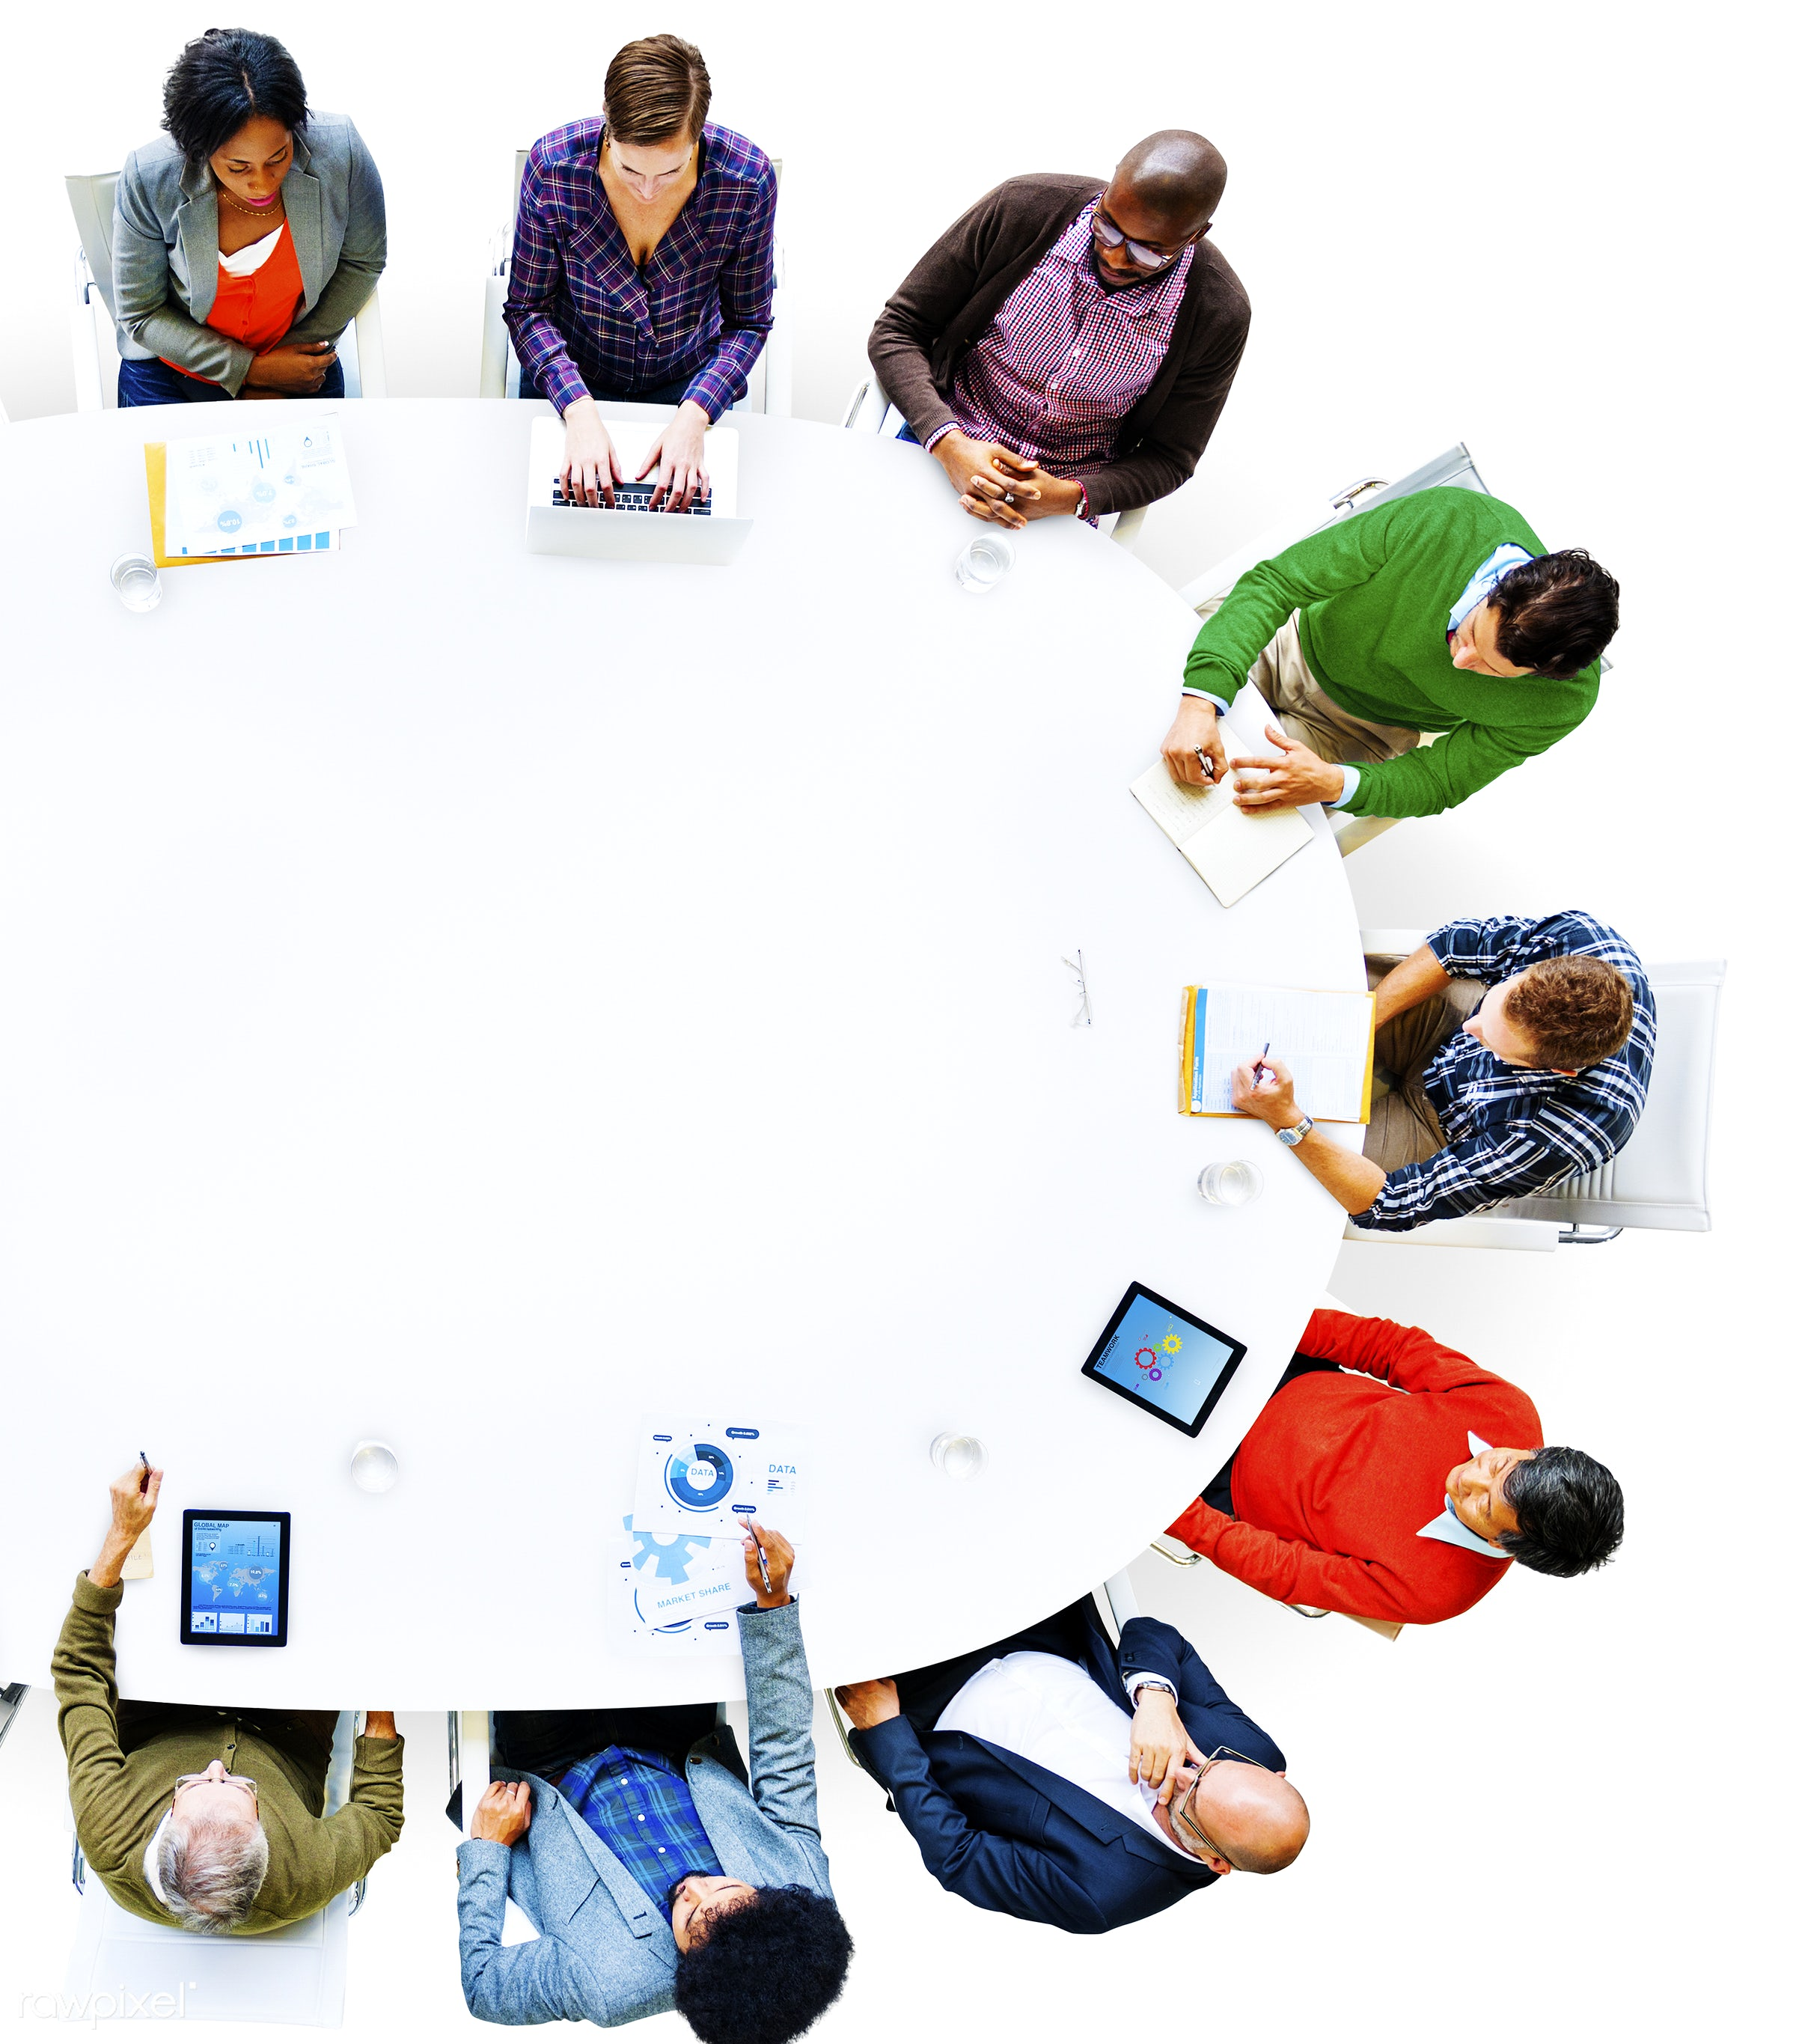 african descent, asian ethnicity, brainstorming, bright, business, cheerful, colorful, community, computer, computer network...